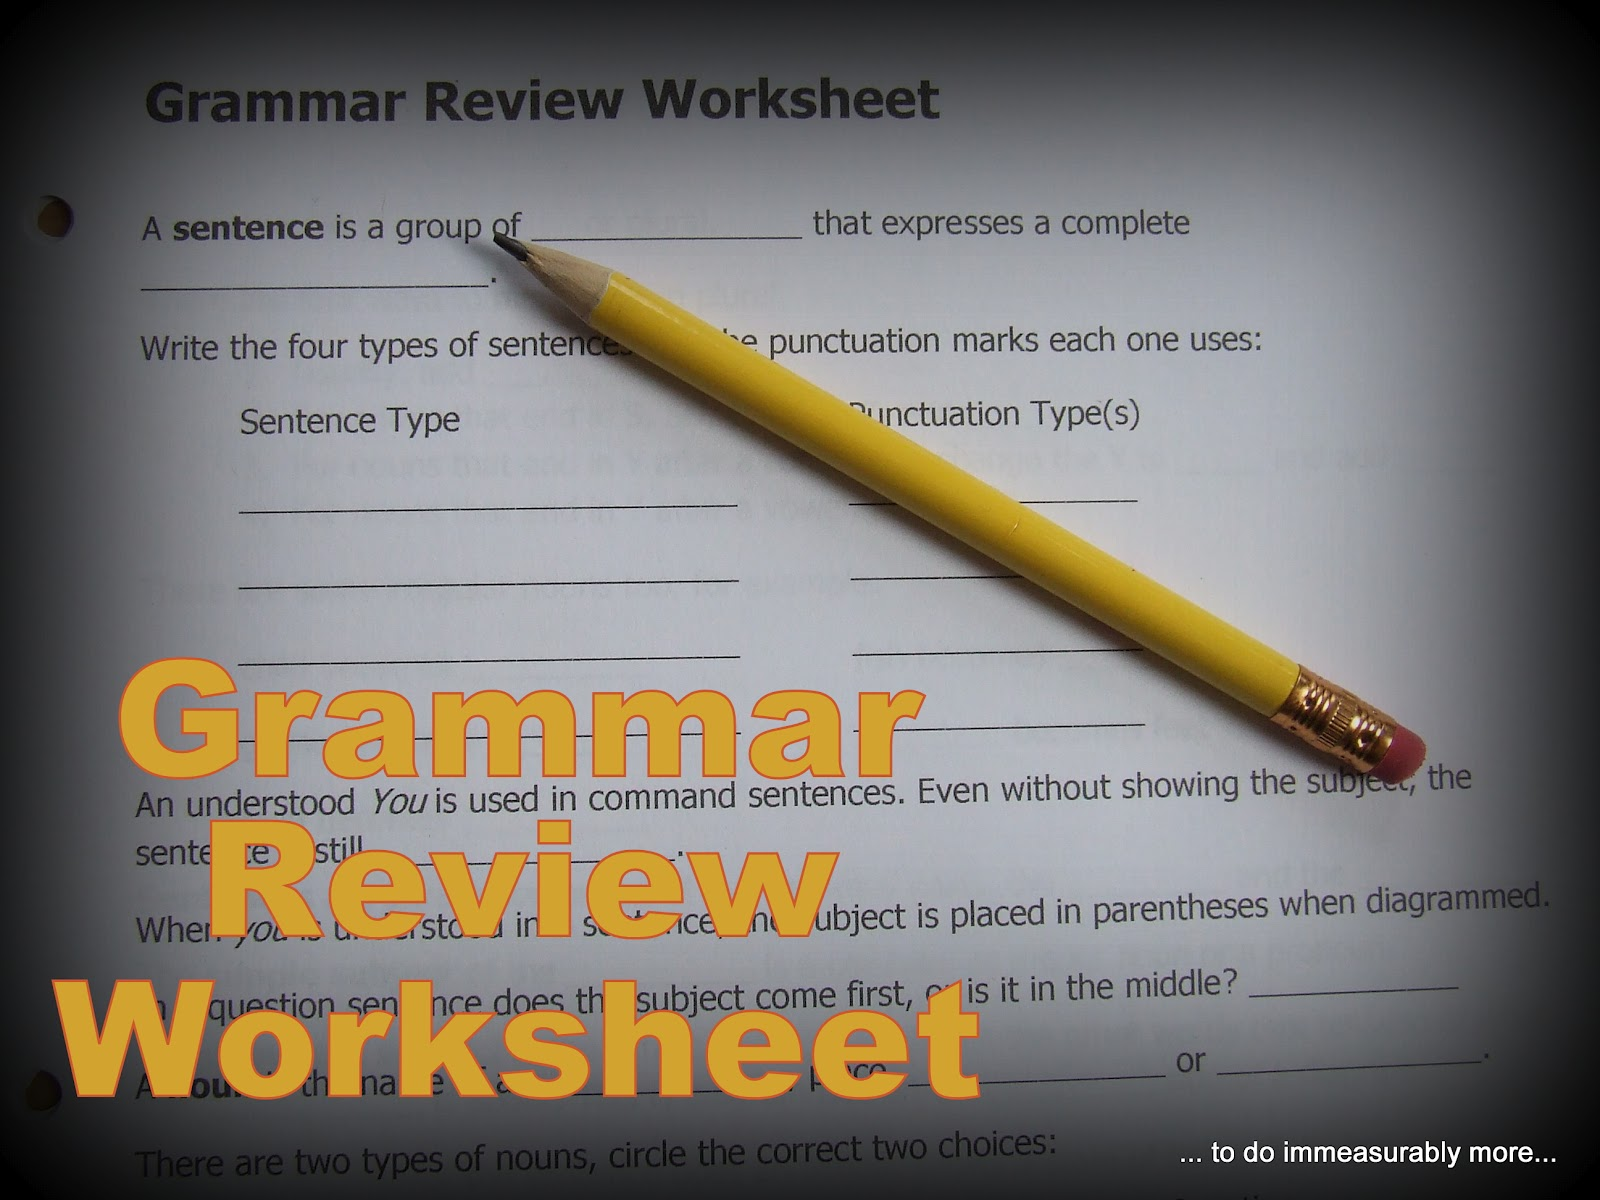 Do Measurably More Grammar Review Worksheet Printable